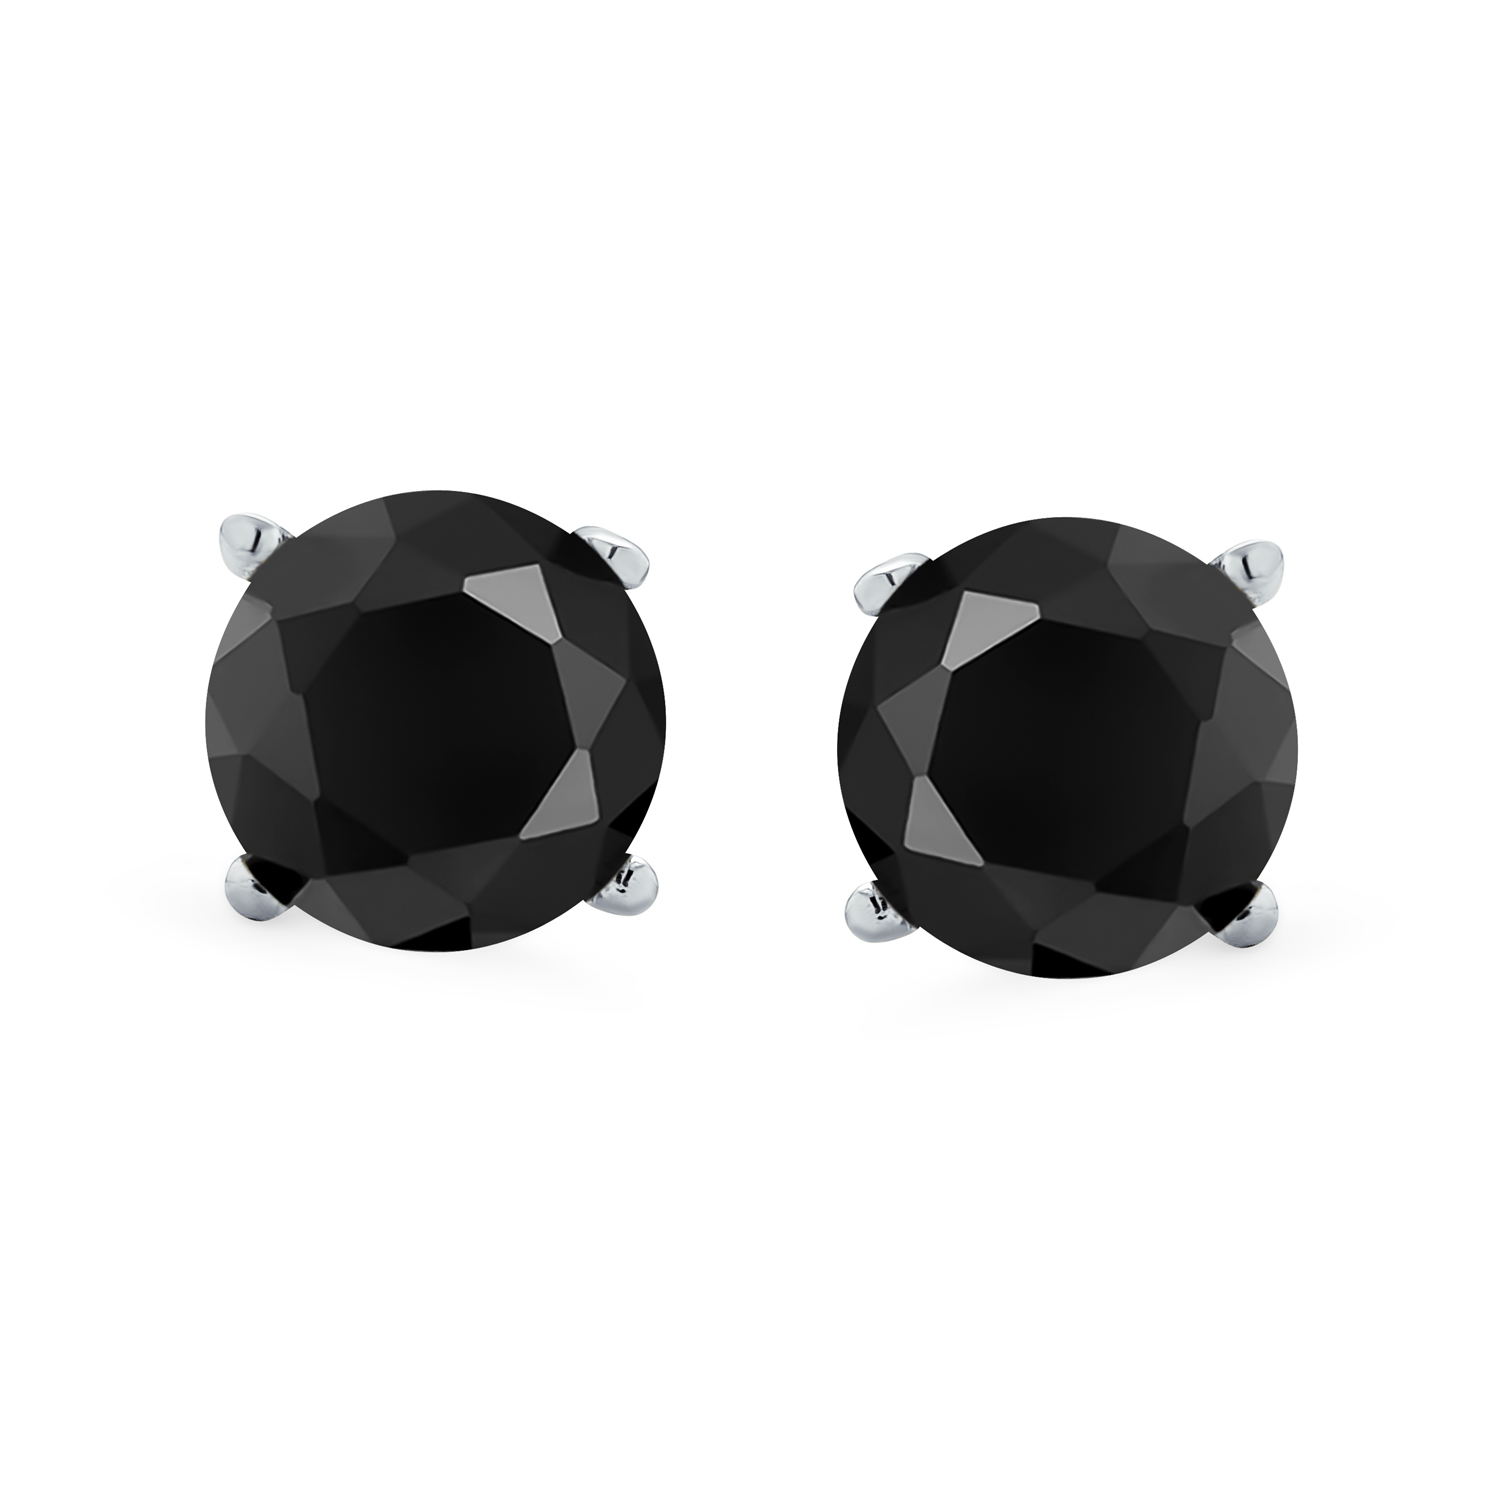 9 Ct Black Spinel Stud Earrings with Push Back for Women in Sterling Silver TJC